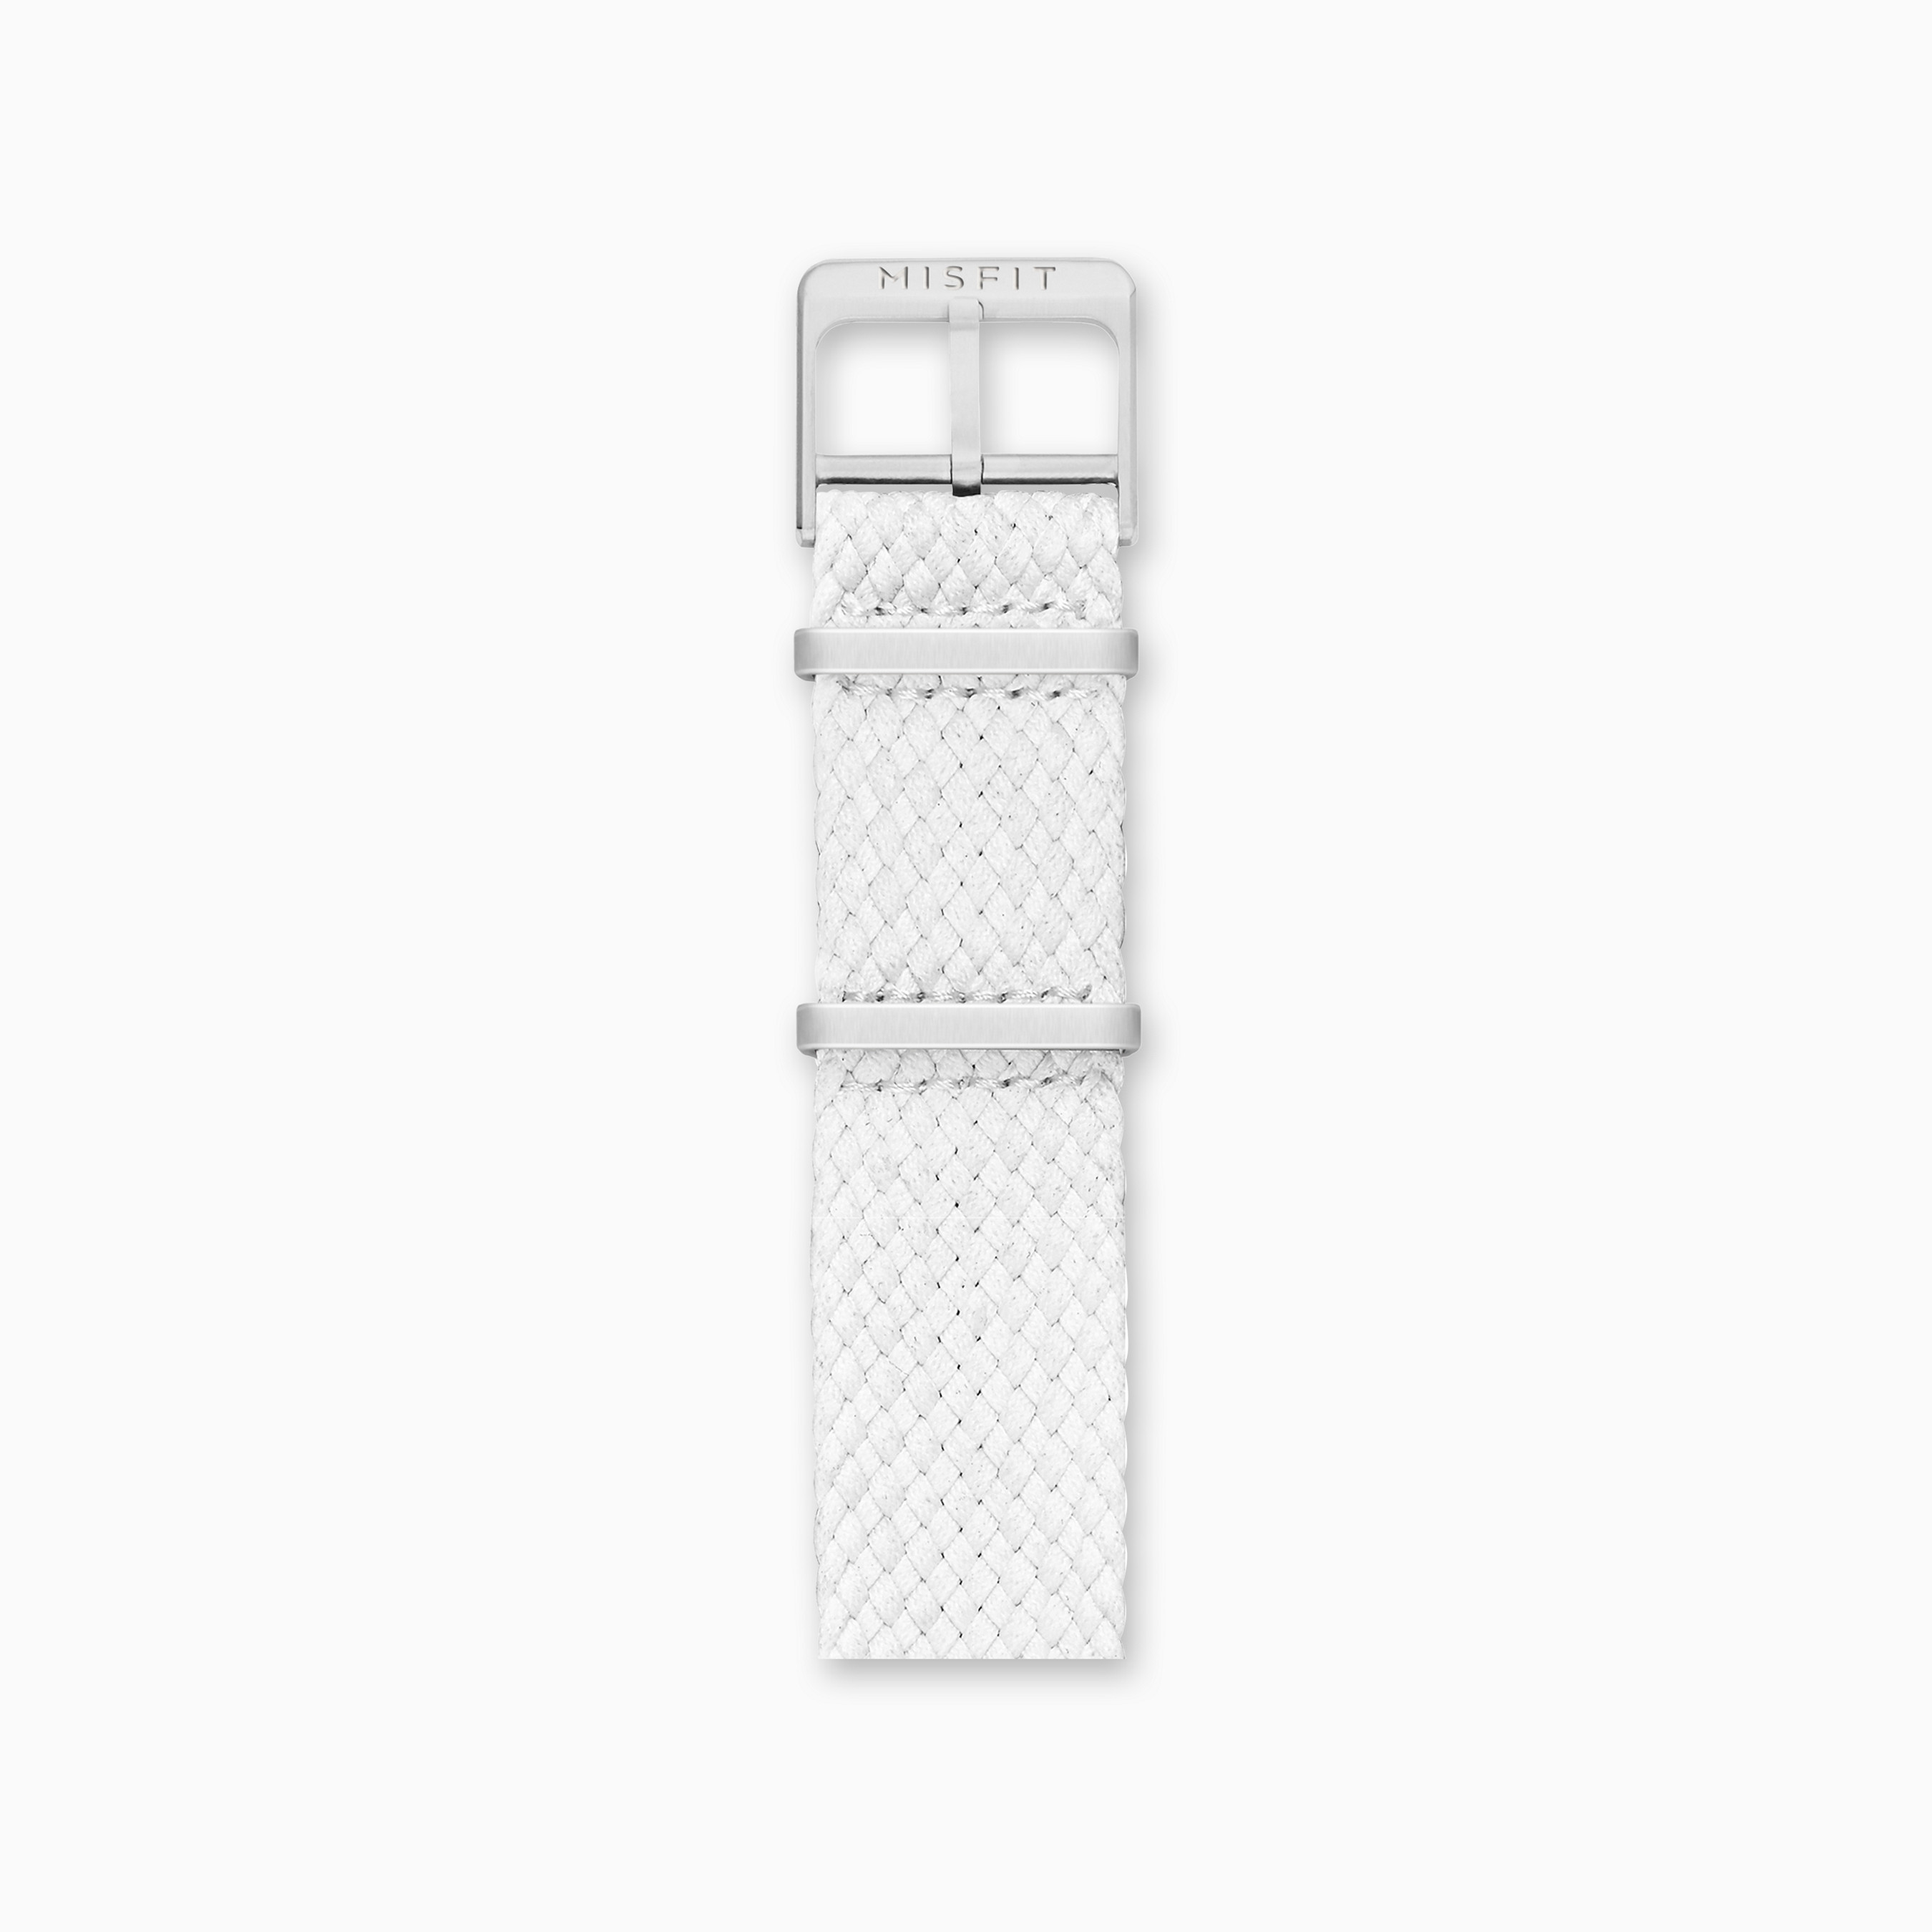 20mm Misfit Smartwatch NATO Nylon Strap